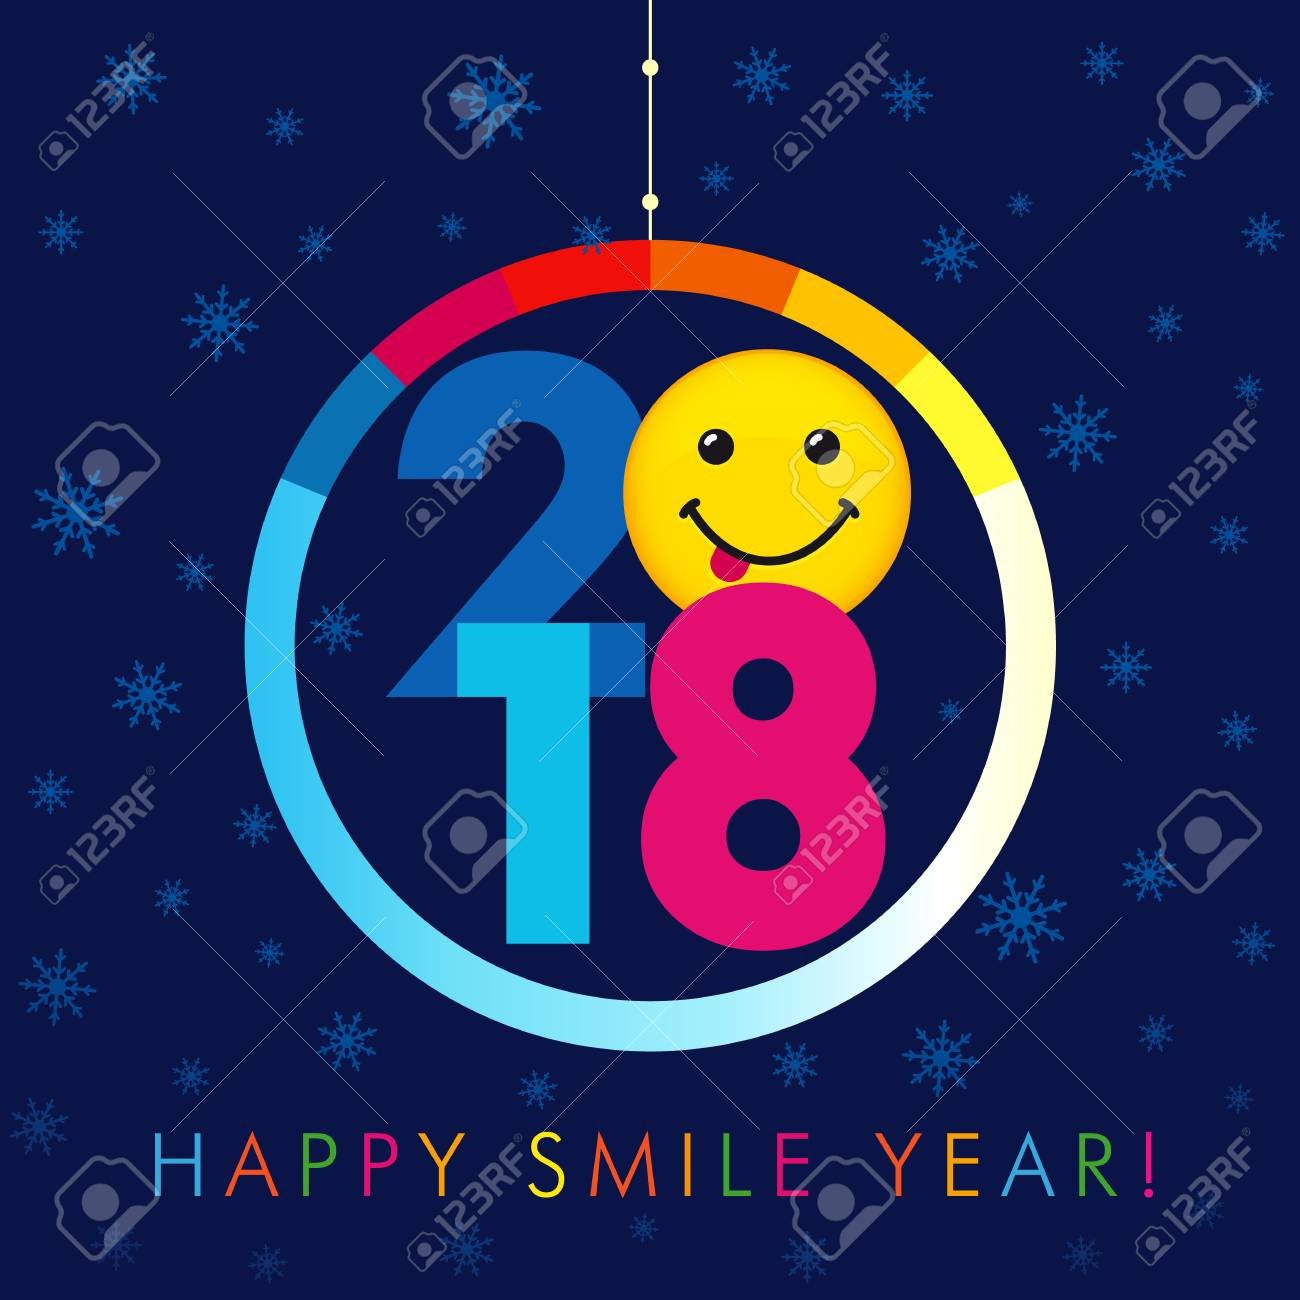 2018 seasons greetings happy smile year card christmas ball 2018 seasons greetings happy smile year card christmas ball with colorful background 2018 numbers kristyandbryce Image collections